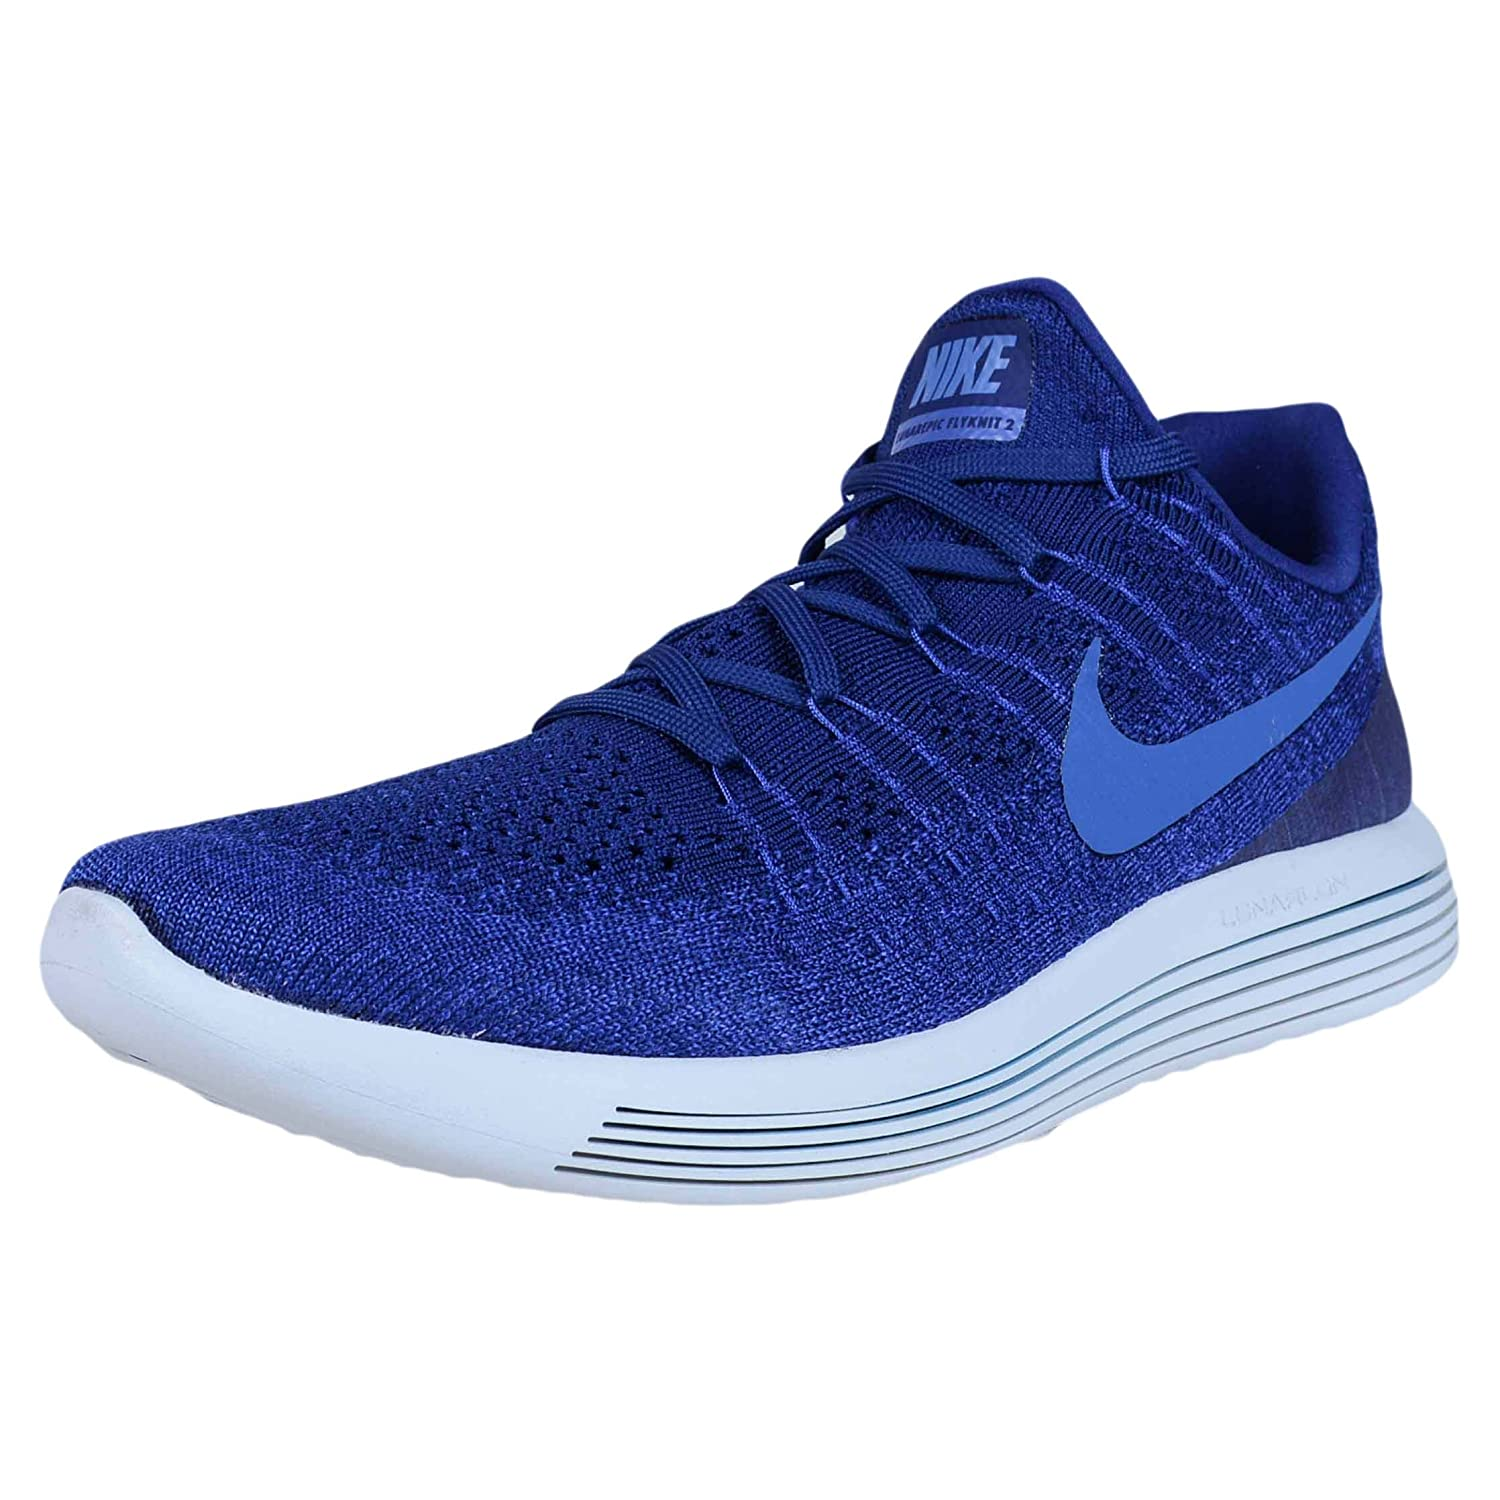 f92f1a329346a Nike Men s Lunarepic Low Flyknit 2 Running Shoe DEEP Royal Blue Medium Blue  11. 5  Amazon.in  Shoes   Handbags